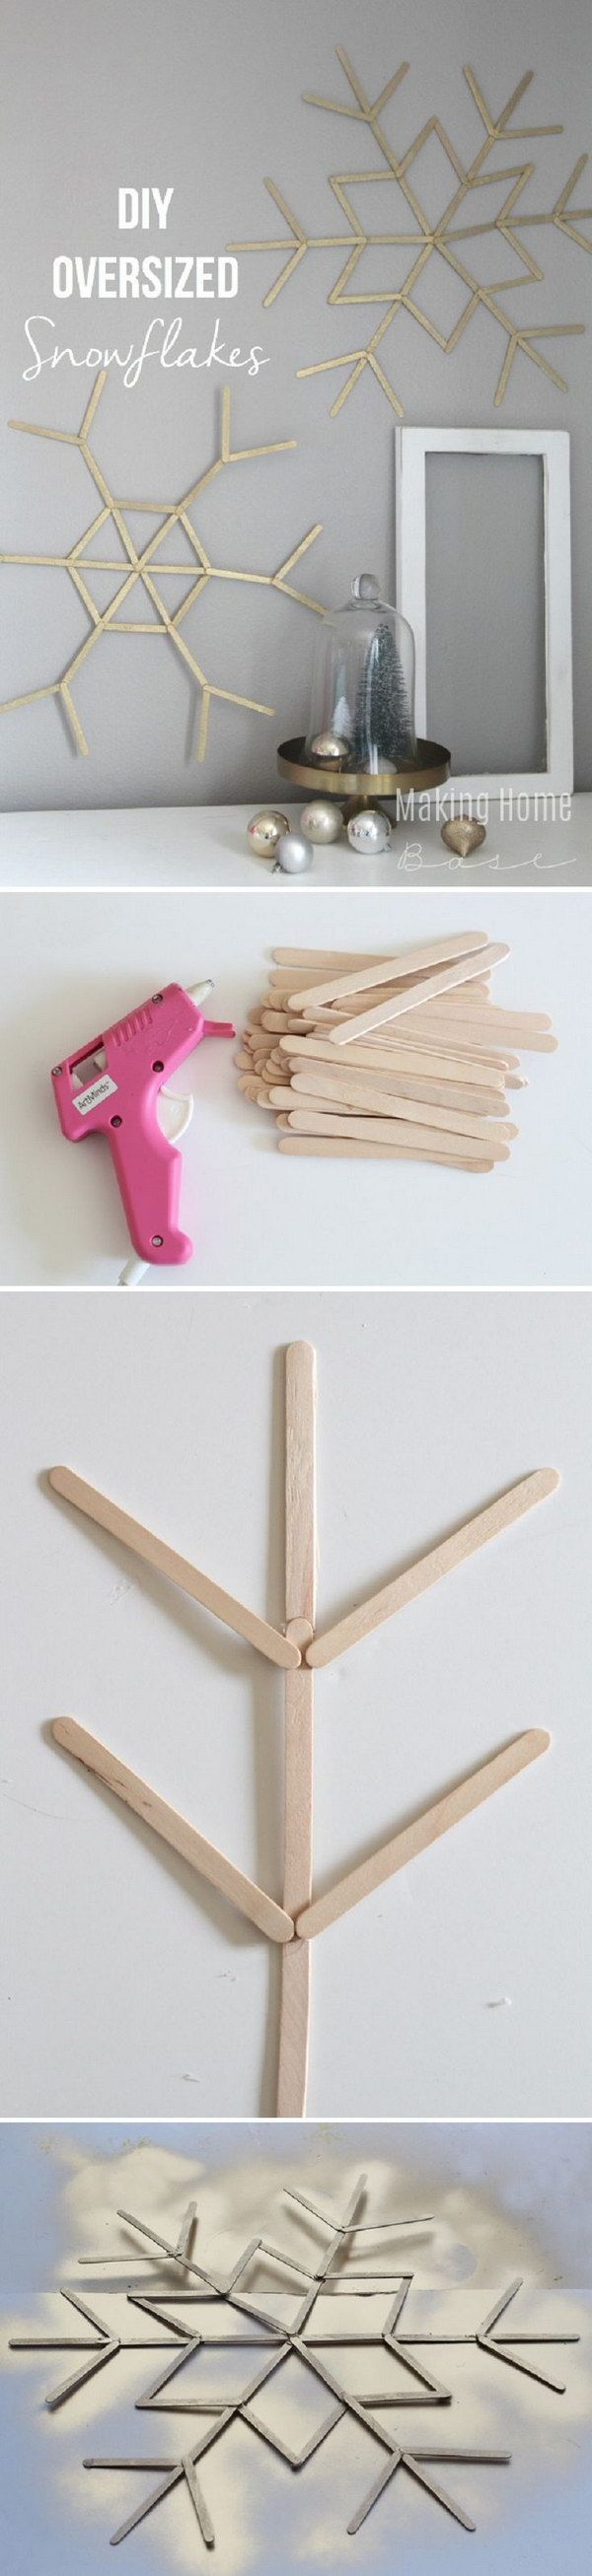 DIY Popsicle Stick Snowflakes. These DIY oversized snowflakes are made from popsicle sticks. They are the perfect oversized wall art for the winter decoration.